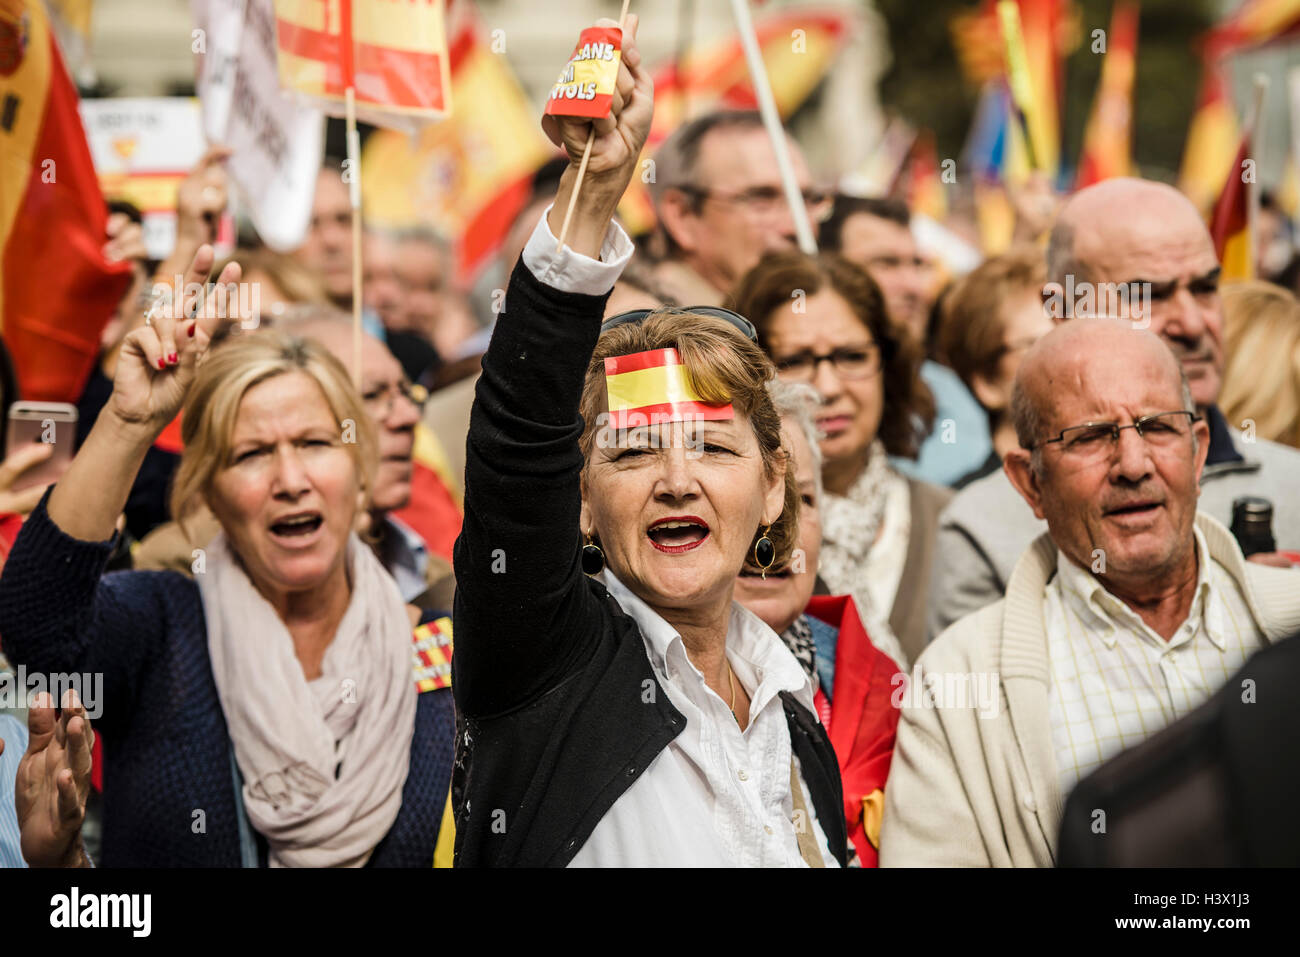 Barcelona, Spain. 12th October, 2016:  Anti-separatist Catalans shout slogans against the unilateral disconnection - Stock Image